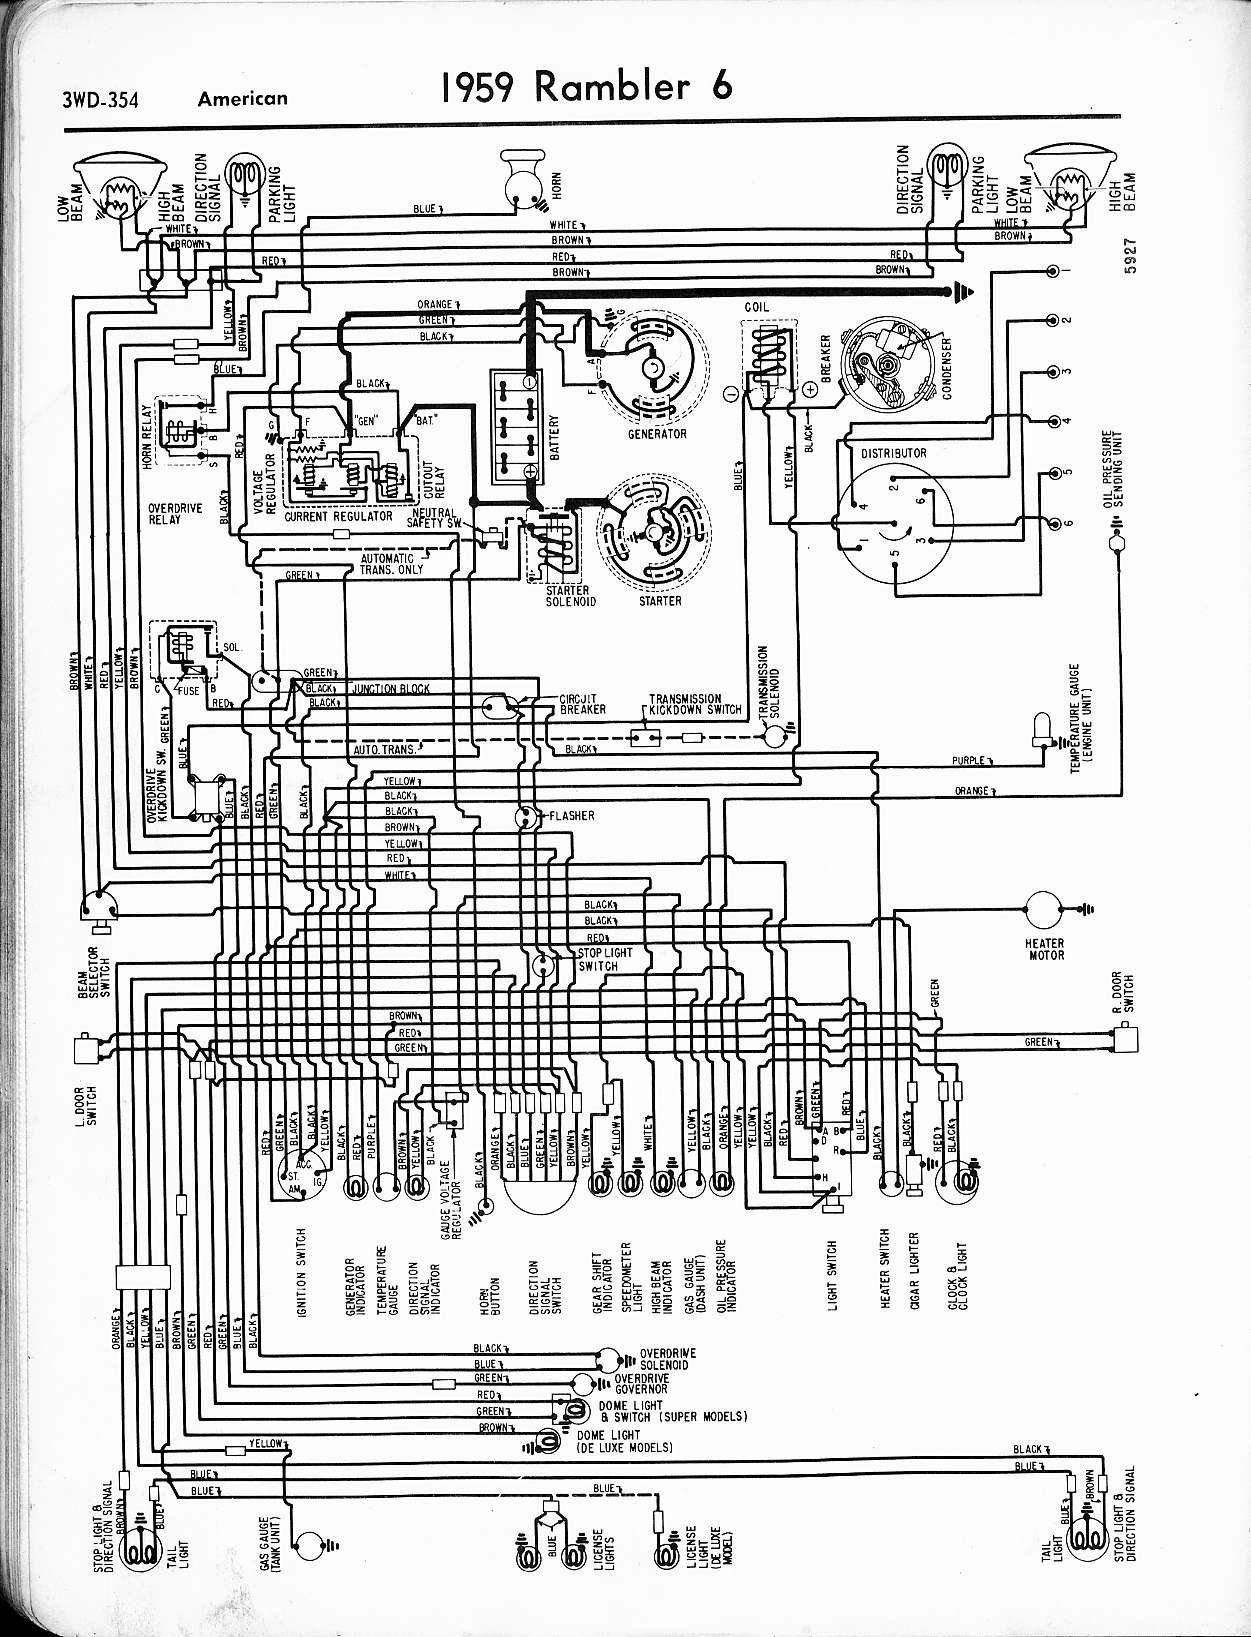 rambler wiring diagrams the old car manual project rh oldcarmanualproject com mack wiring diagrams 1970 amc javelin wiring diagram